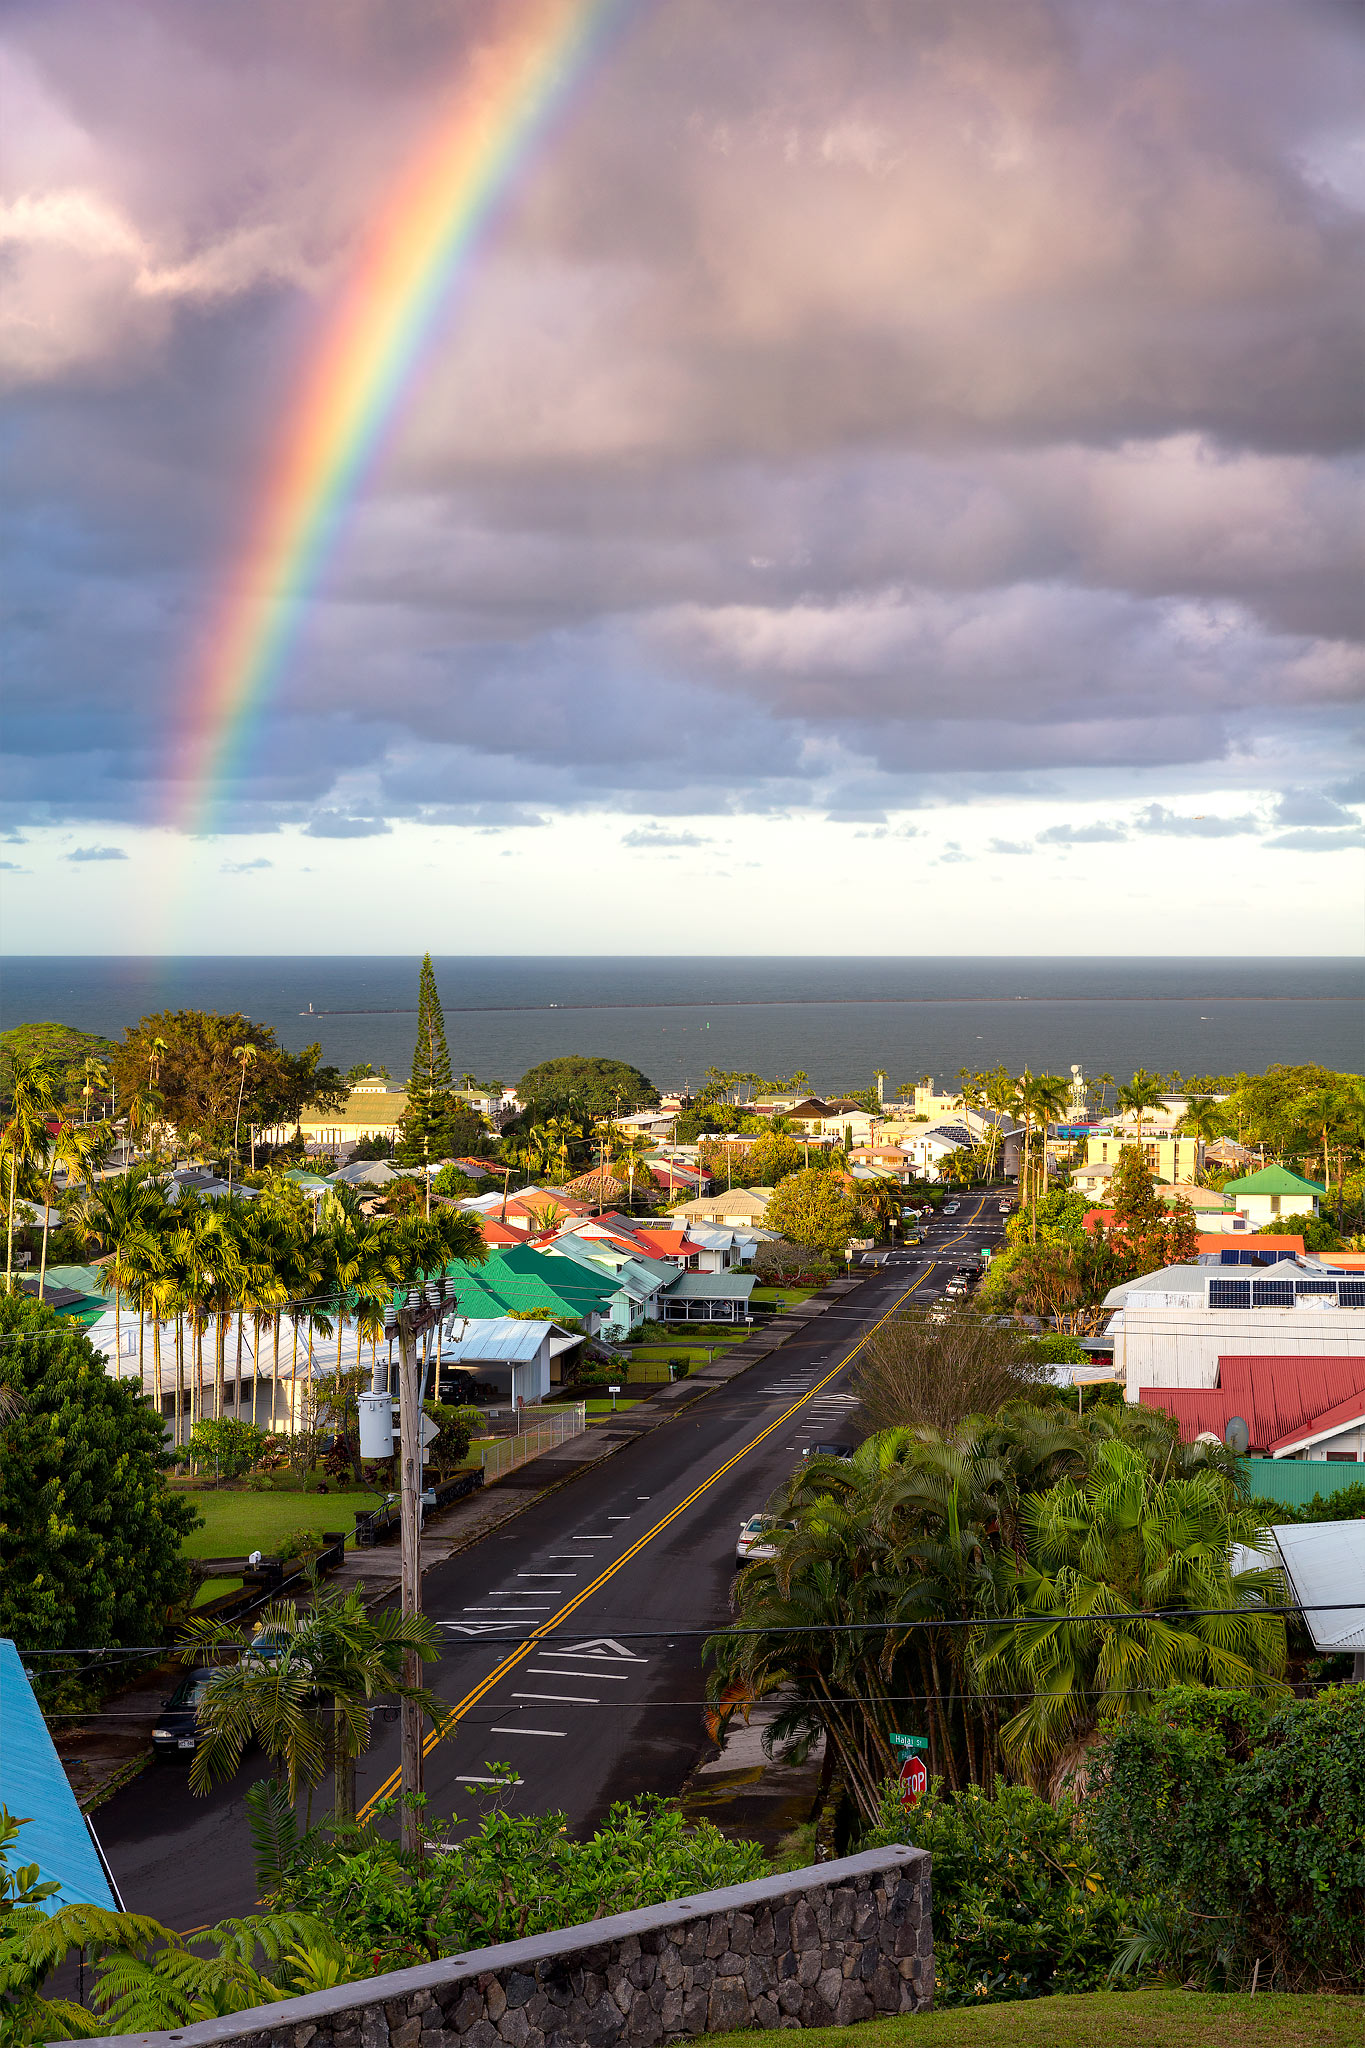 I was able to capture a vibrant rainbow over Hilo Bay while looking over the town of Hilo.